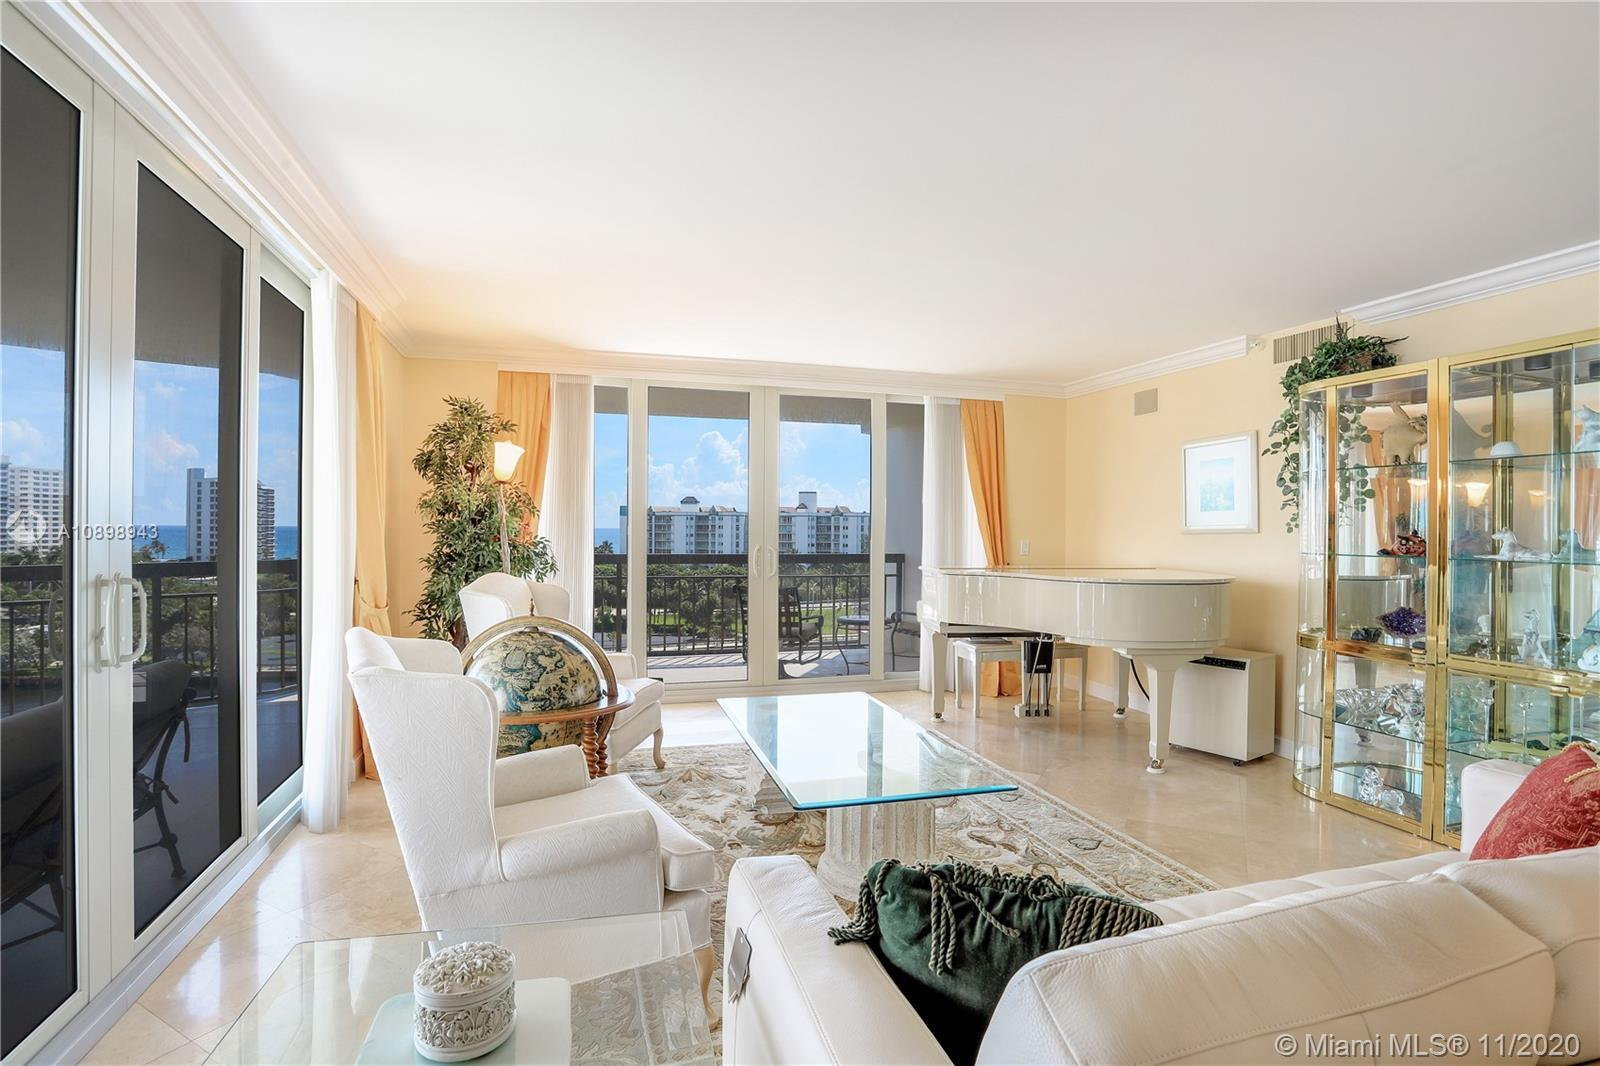 BREATHTAKING 3 BED & 3 BATH WITH 2,580 SF & OVER 540 SF OF BALCONY SPACE. THE MOST DESIRABLE B LINE